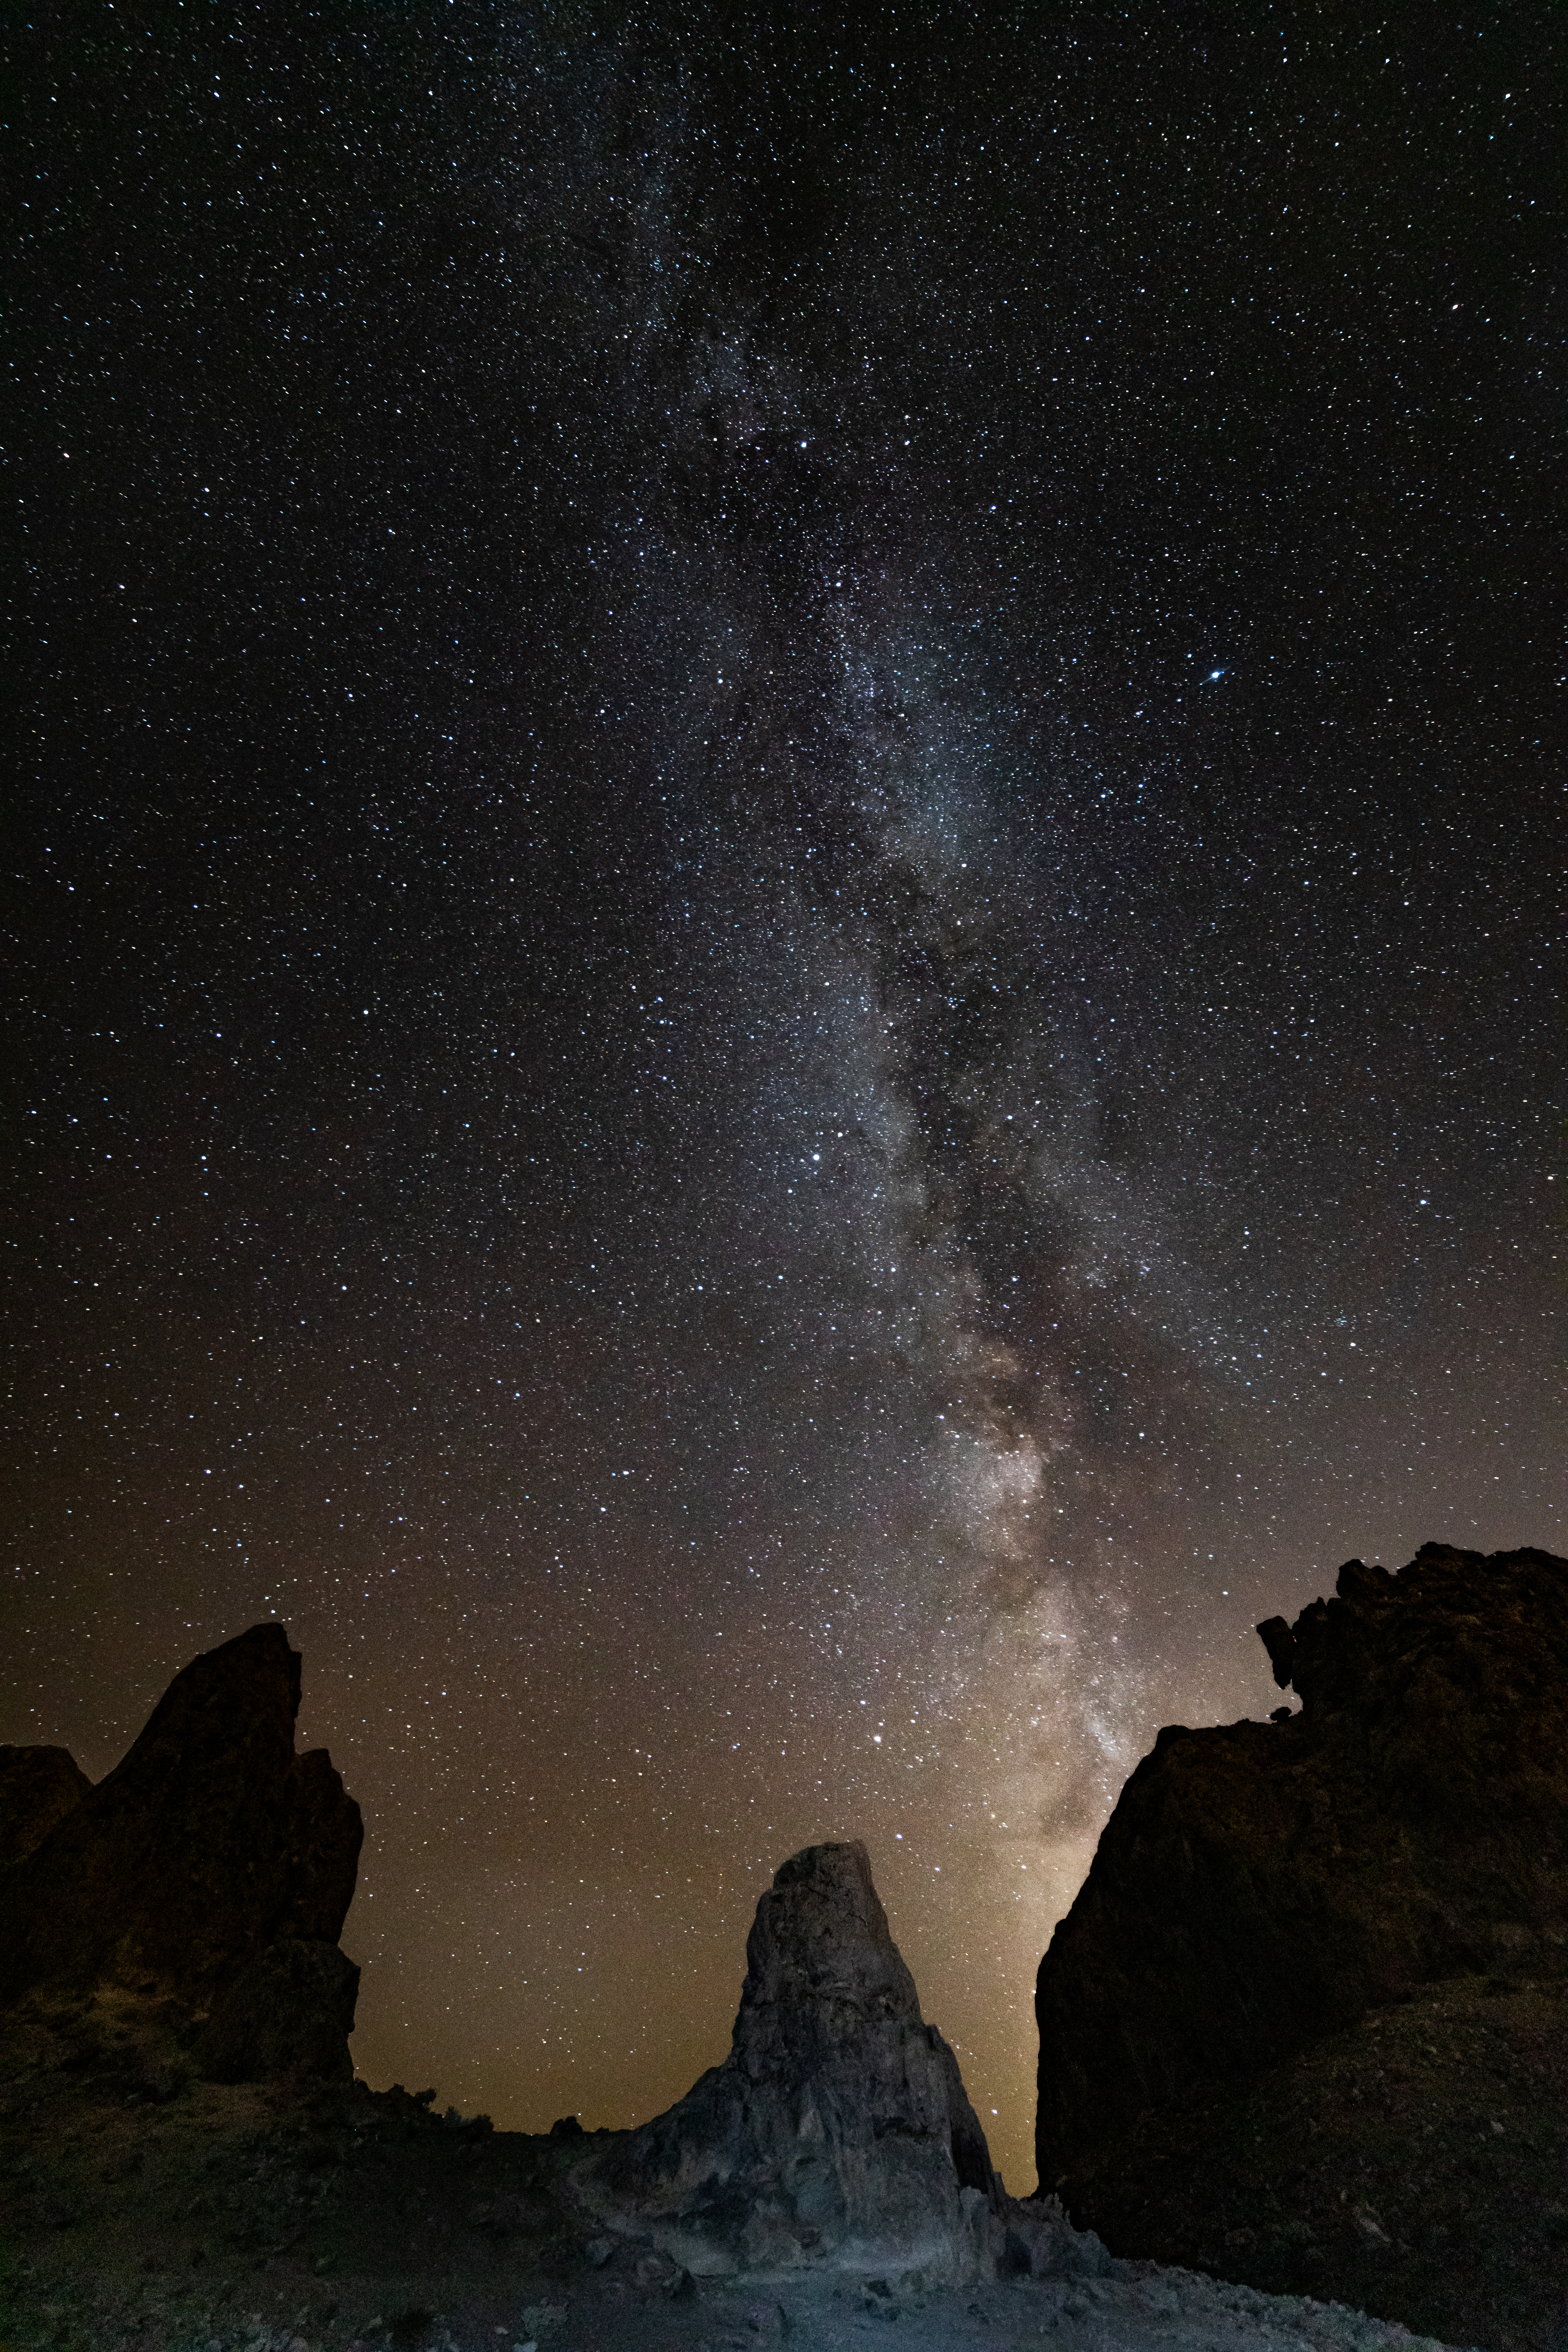 Milkyway, Trona Pinnacles